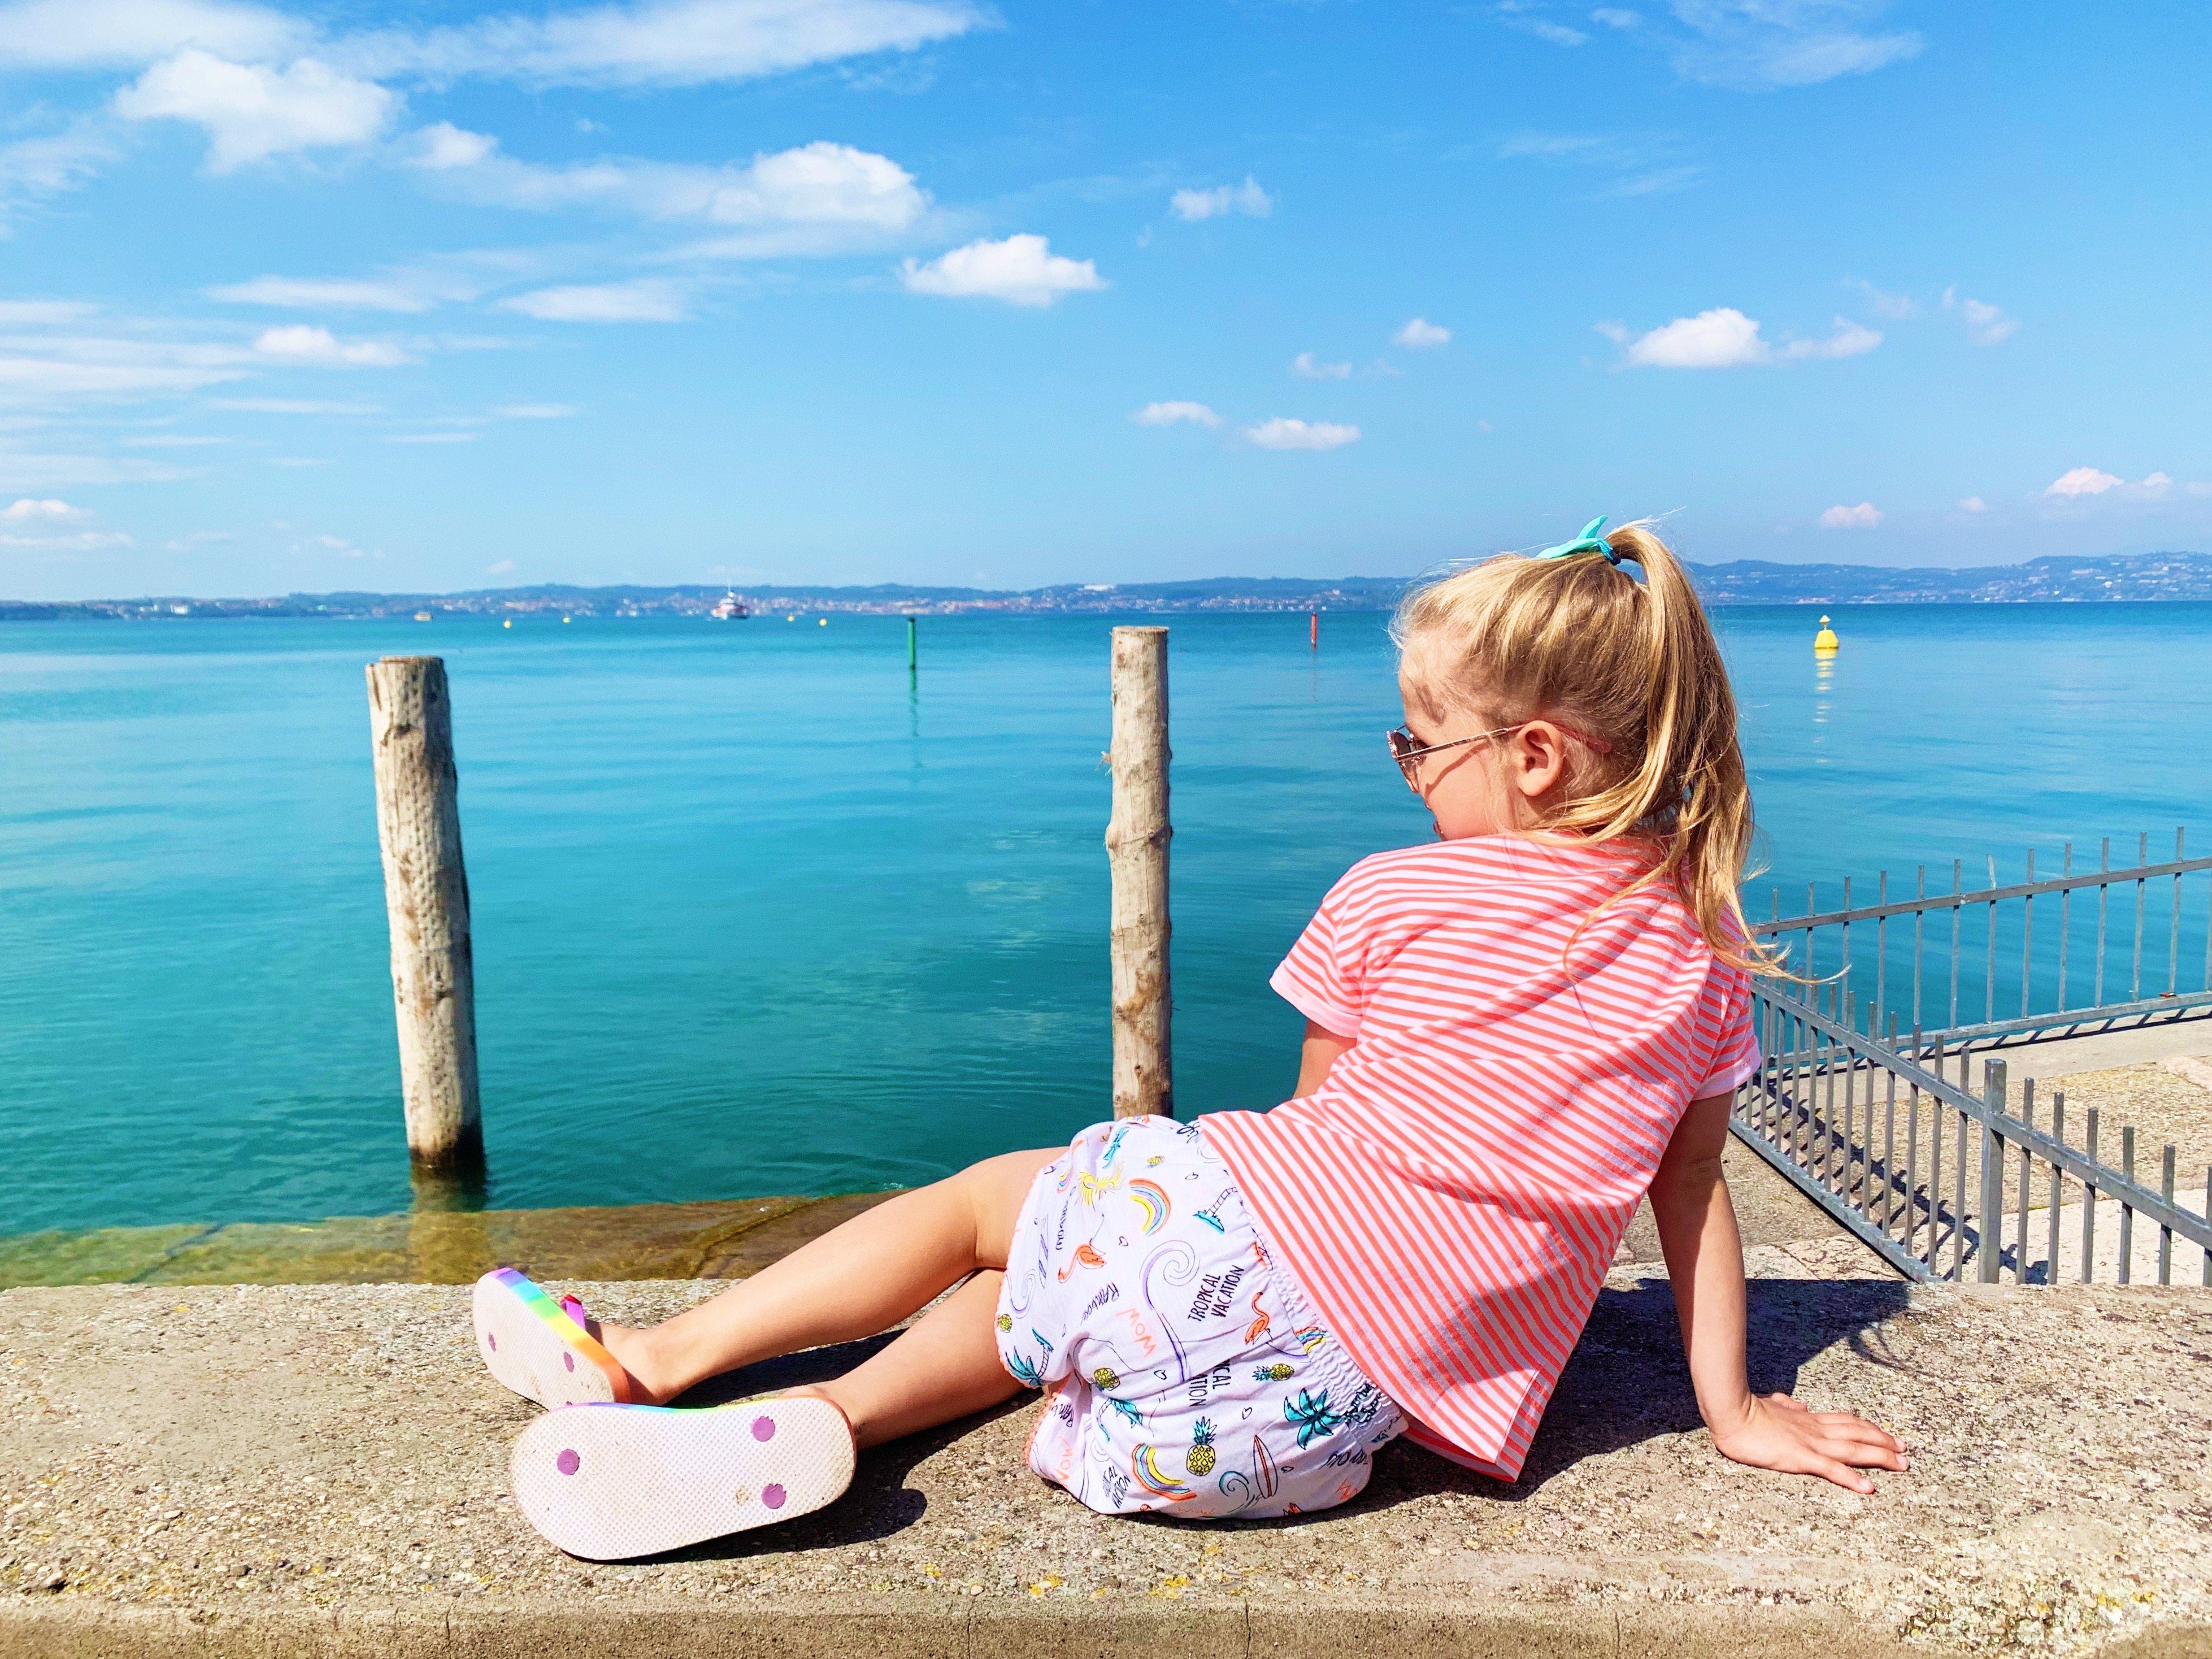 A young girl poses next to a lake in Sirmione Italy